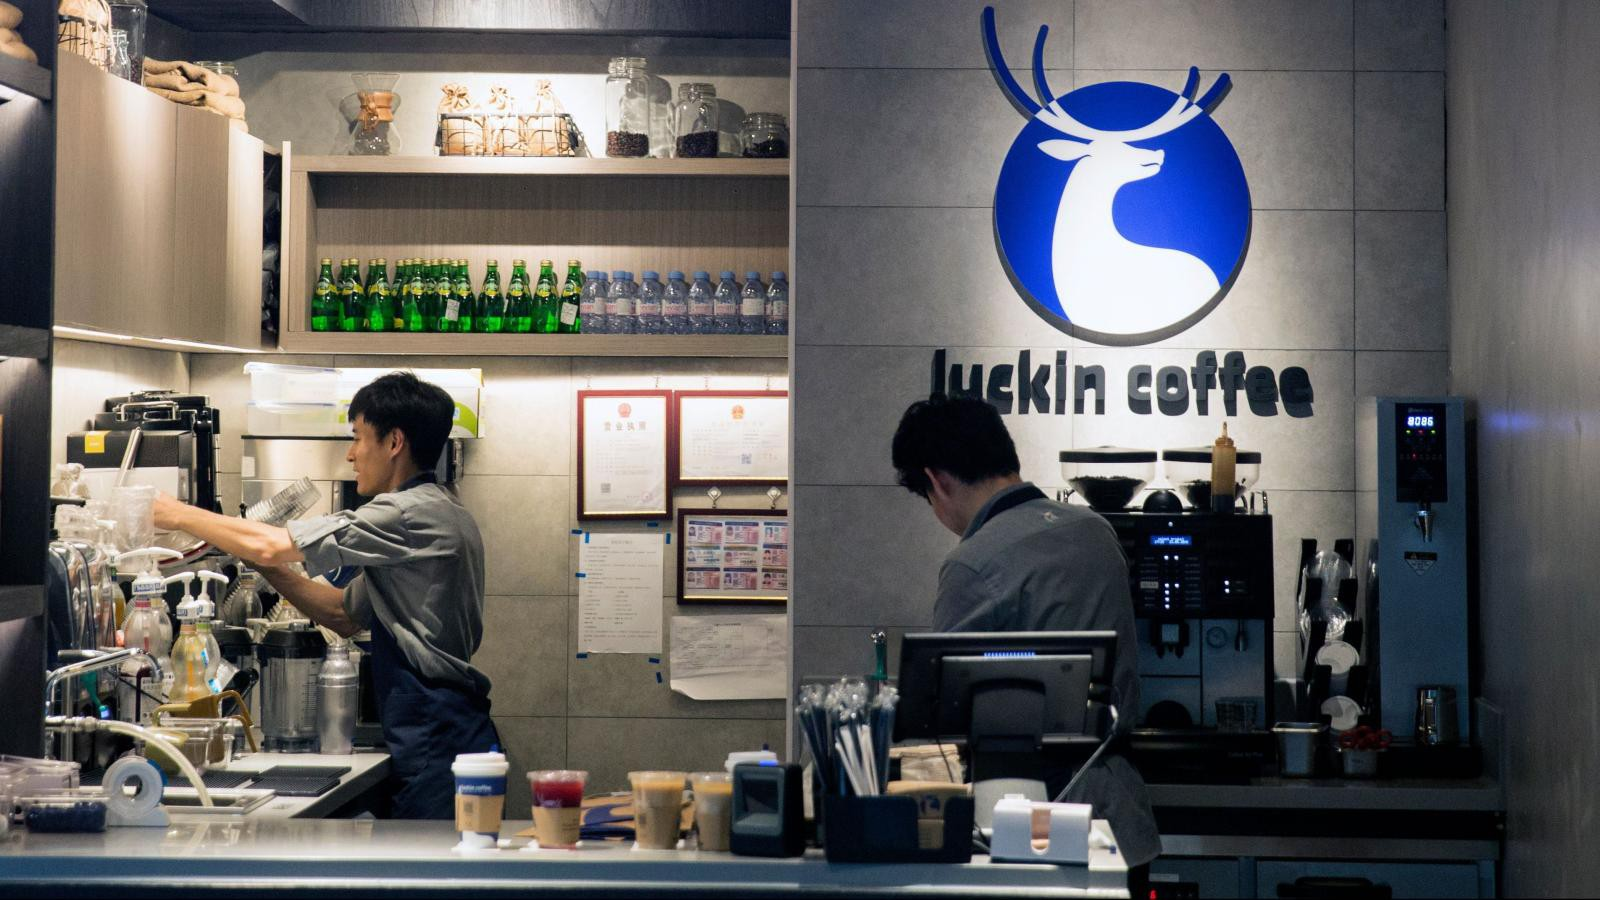 luckin-coffee-china-starbucks-rival-e1531299378506